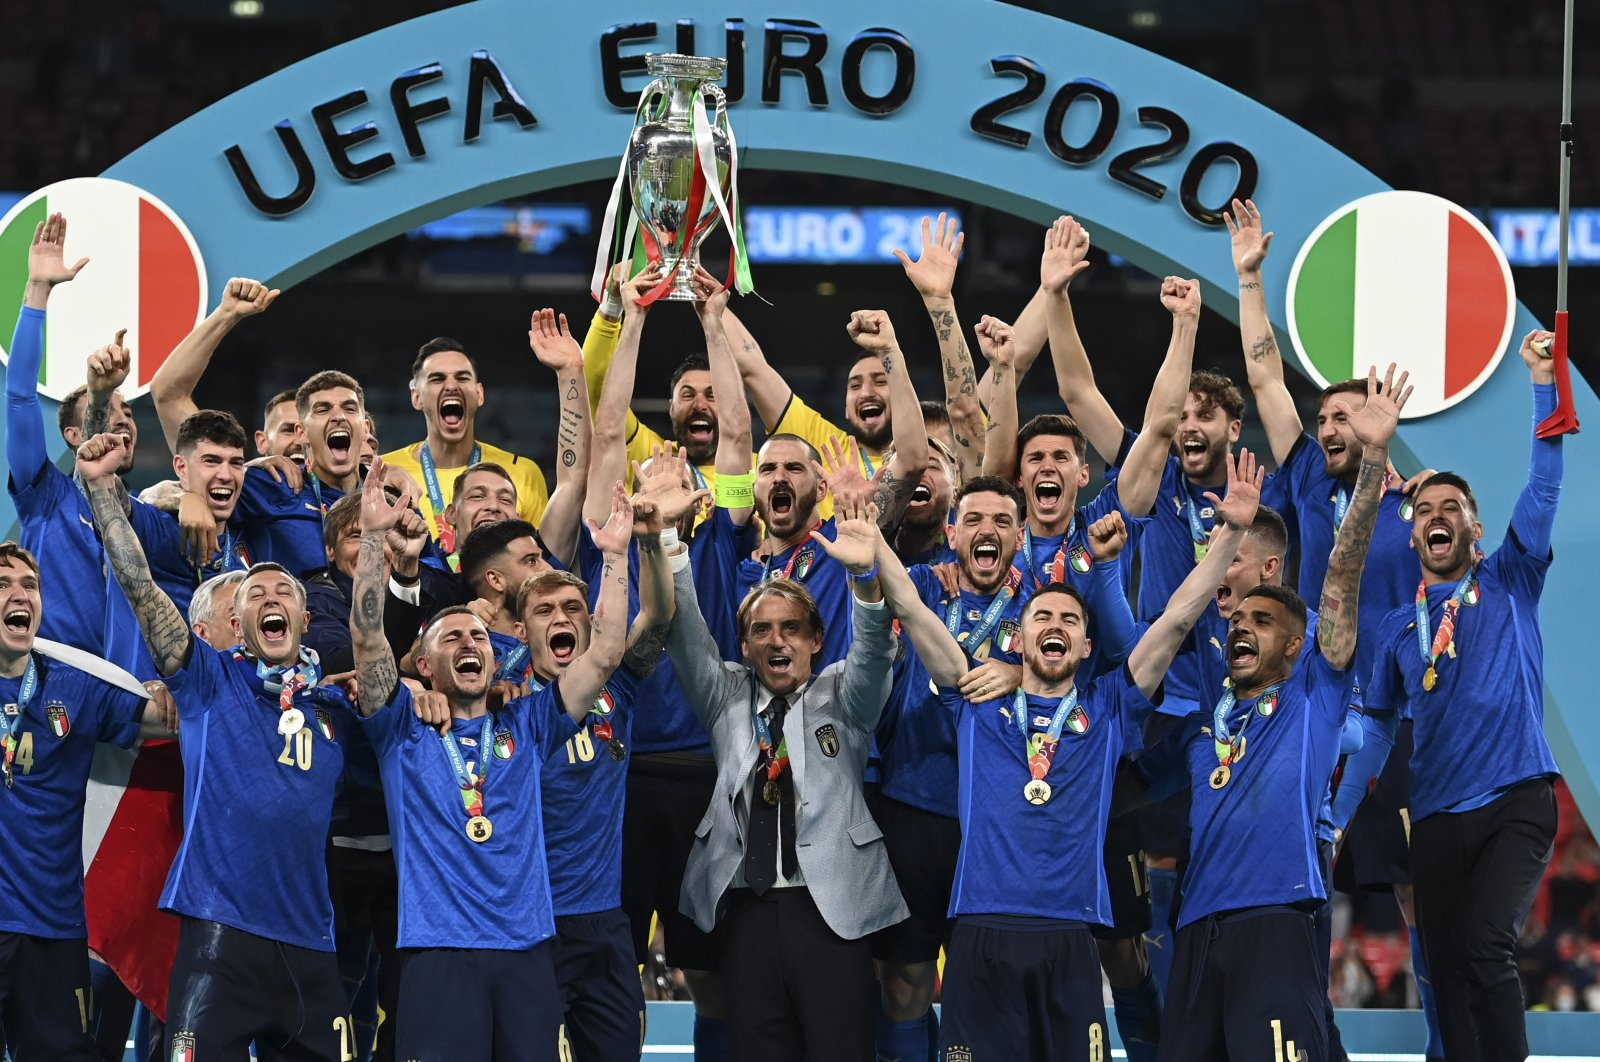 Italy team celebrates with the trophy after winning the Euro 2020 final against England at Wembley stadium in London, England, July 11, 2021. (AP Photo)